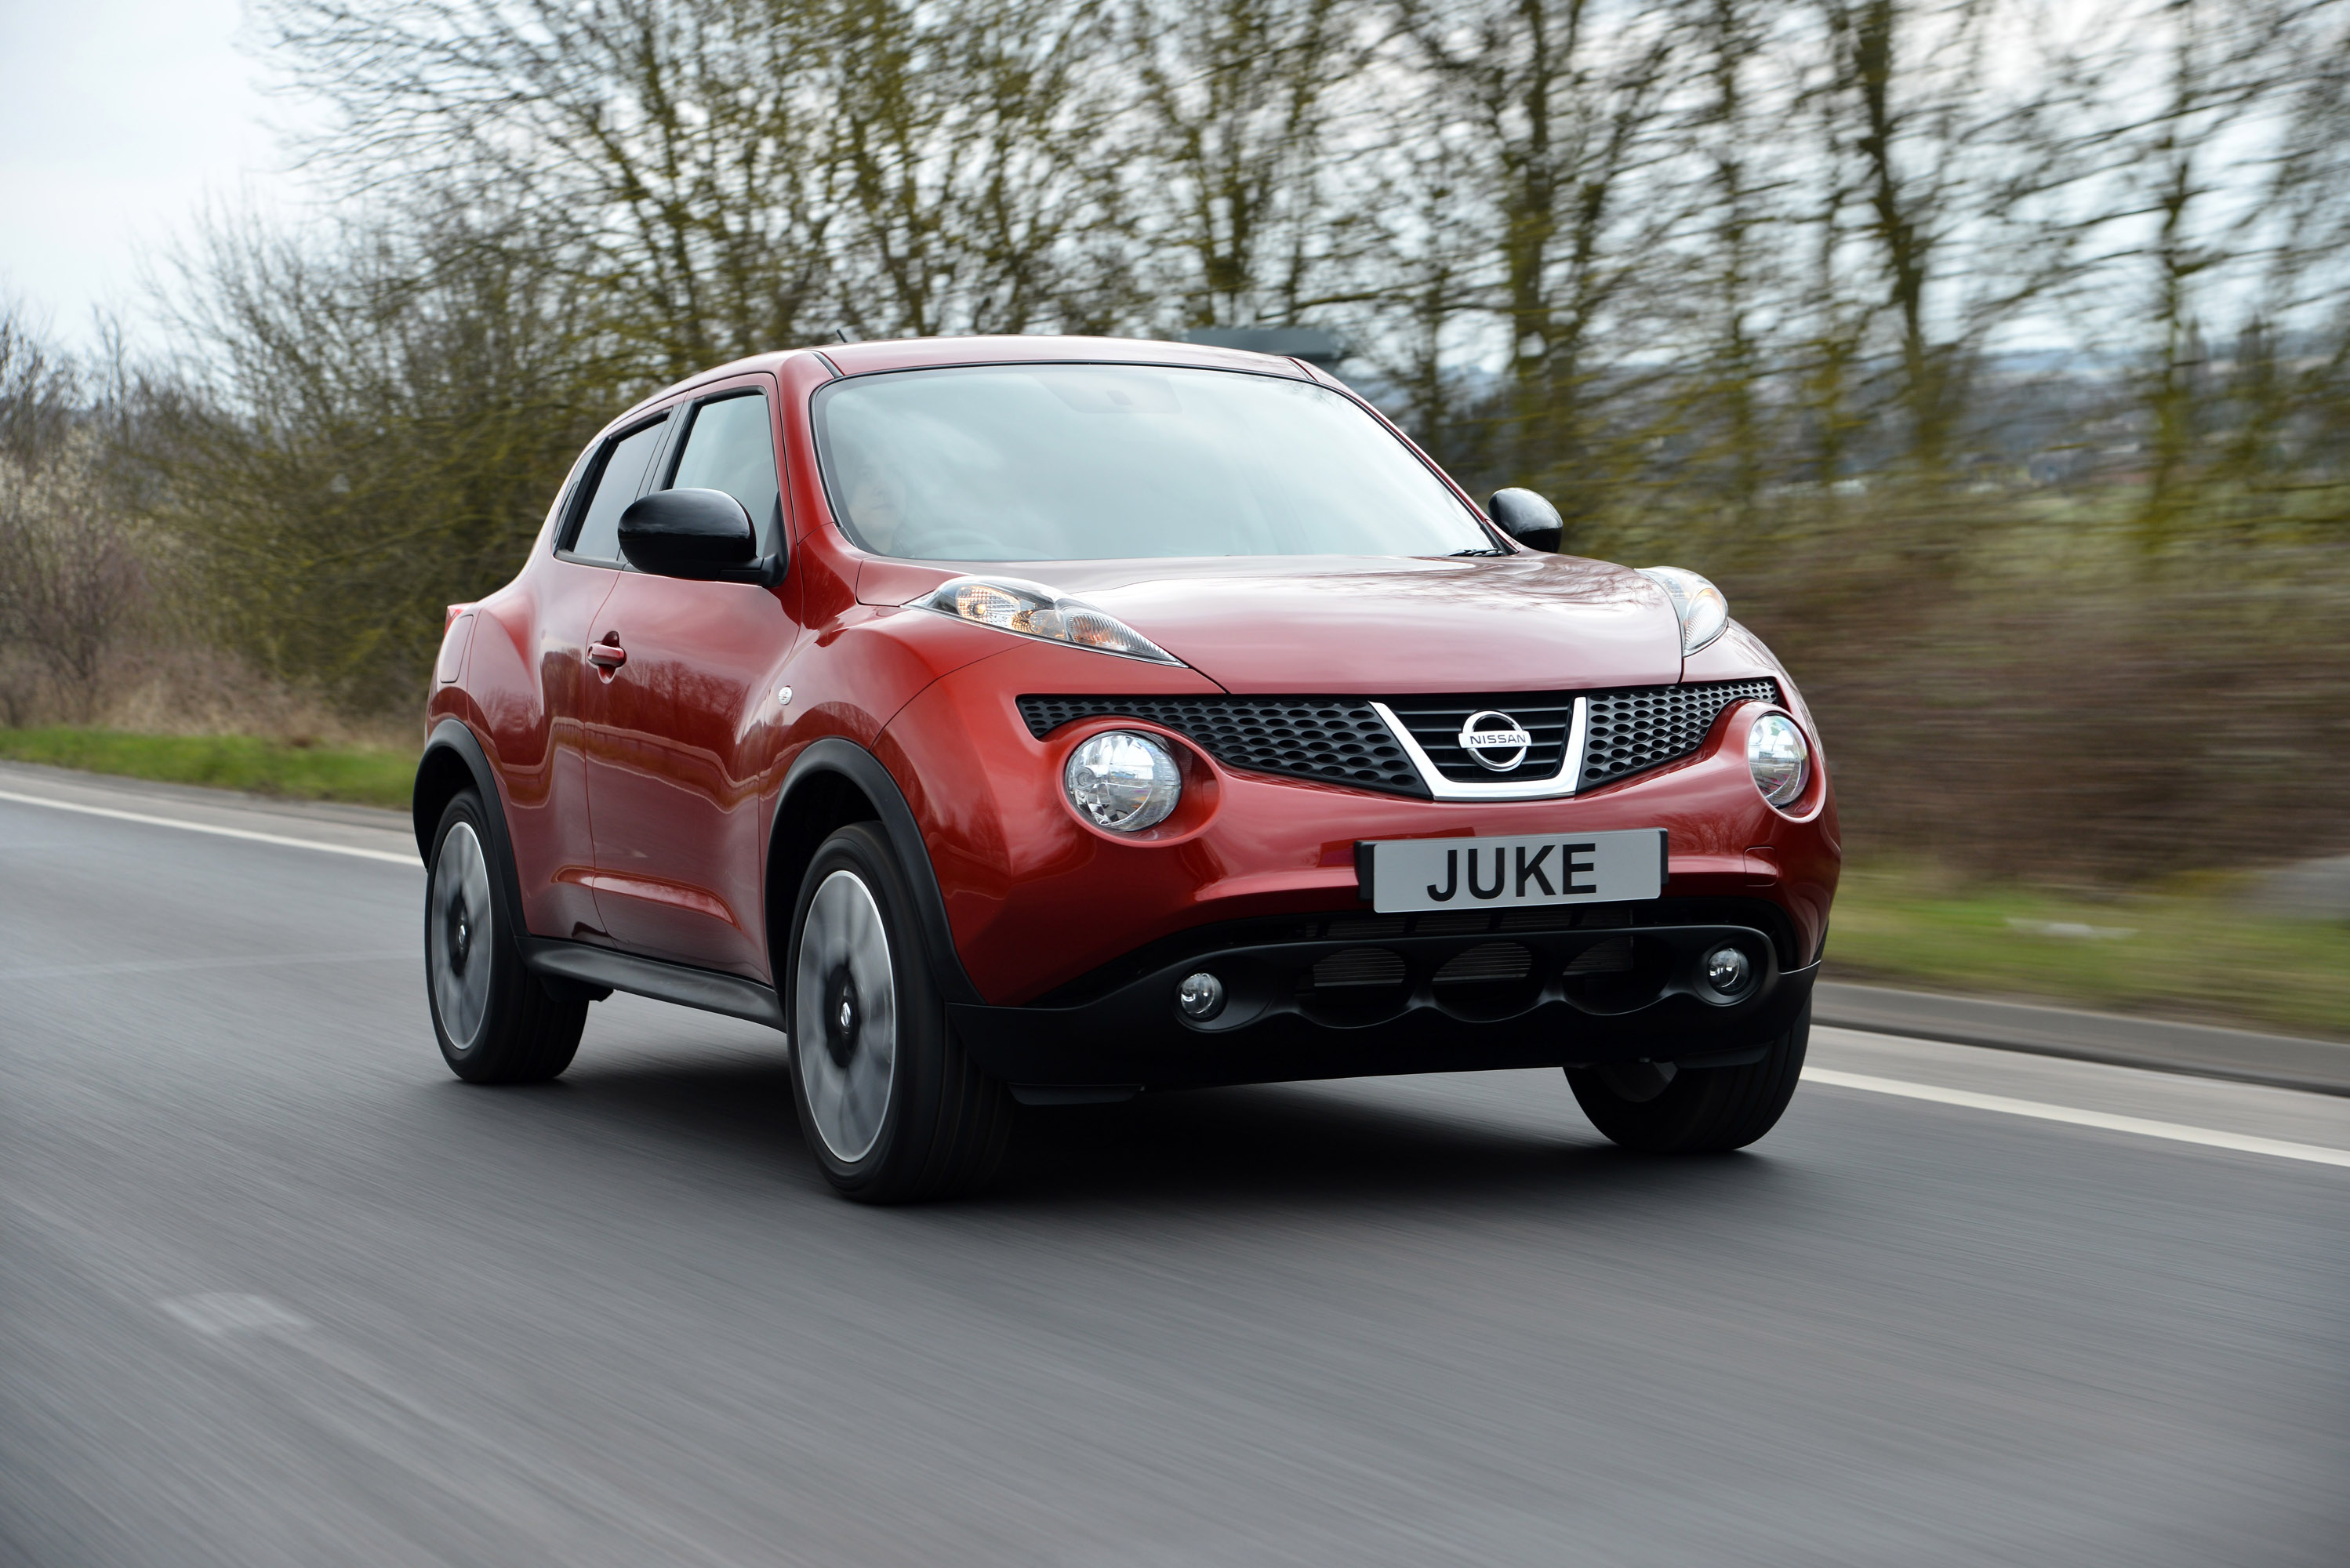 zombiedrive information nissan and juke photos